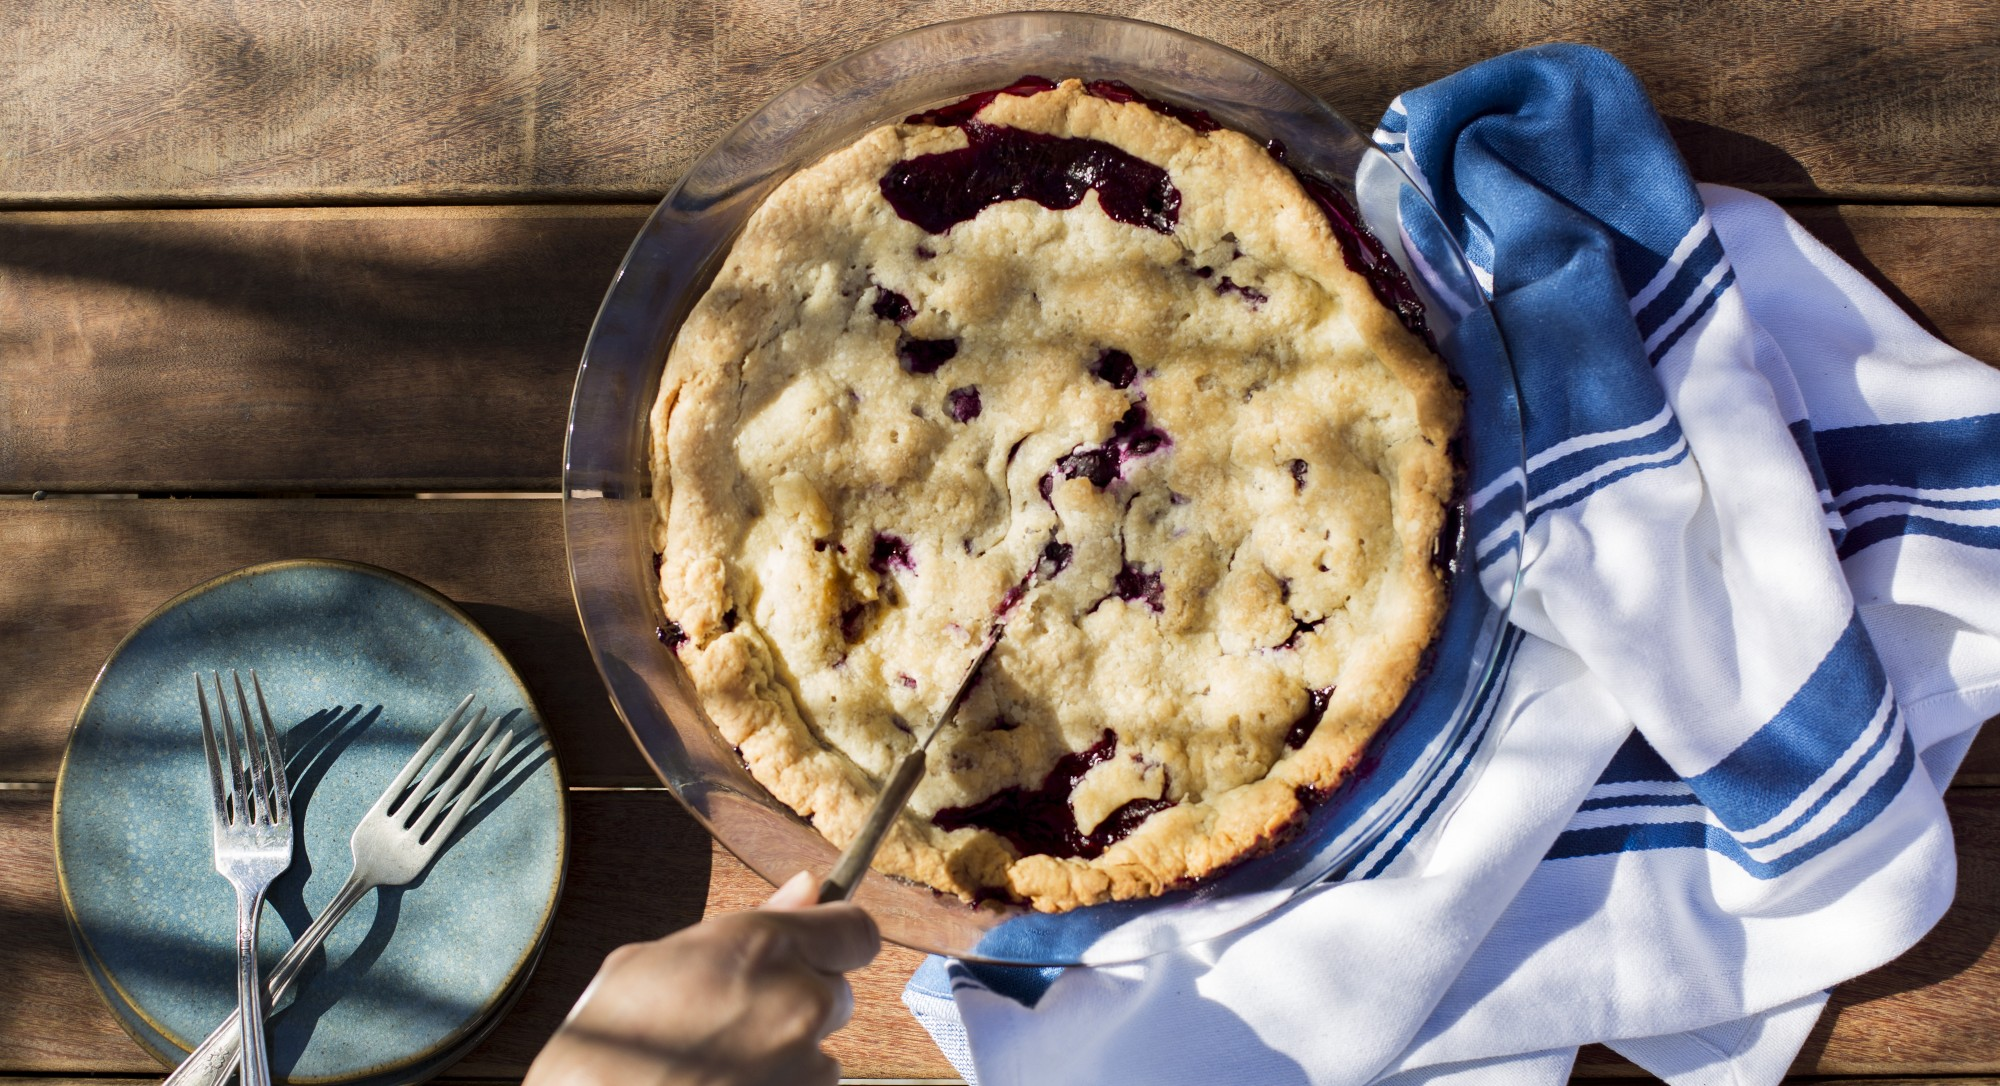 Thrive Tries It: Is a Blueberry Pie Still a Pie When It's Baked With Coconut Oil?